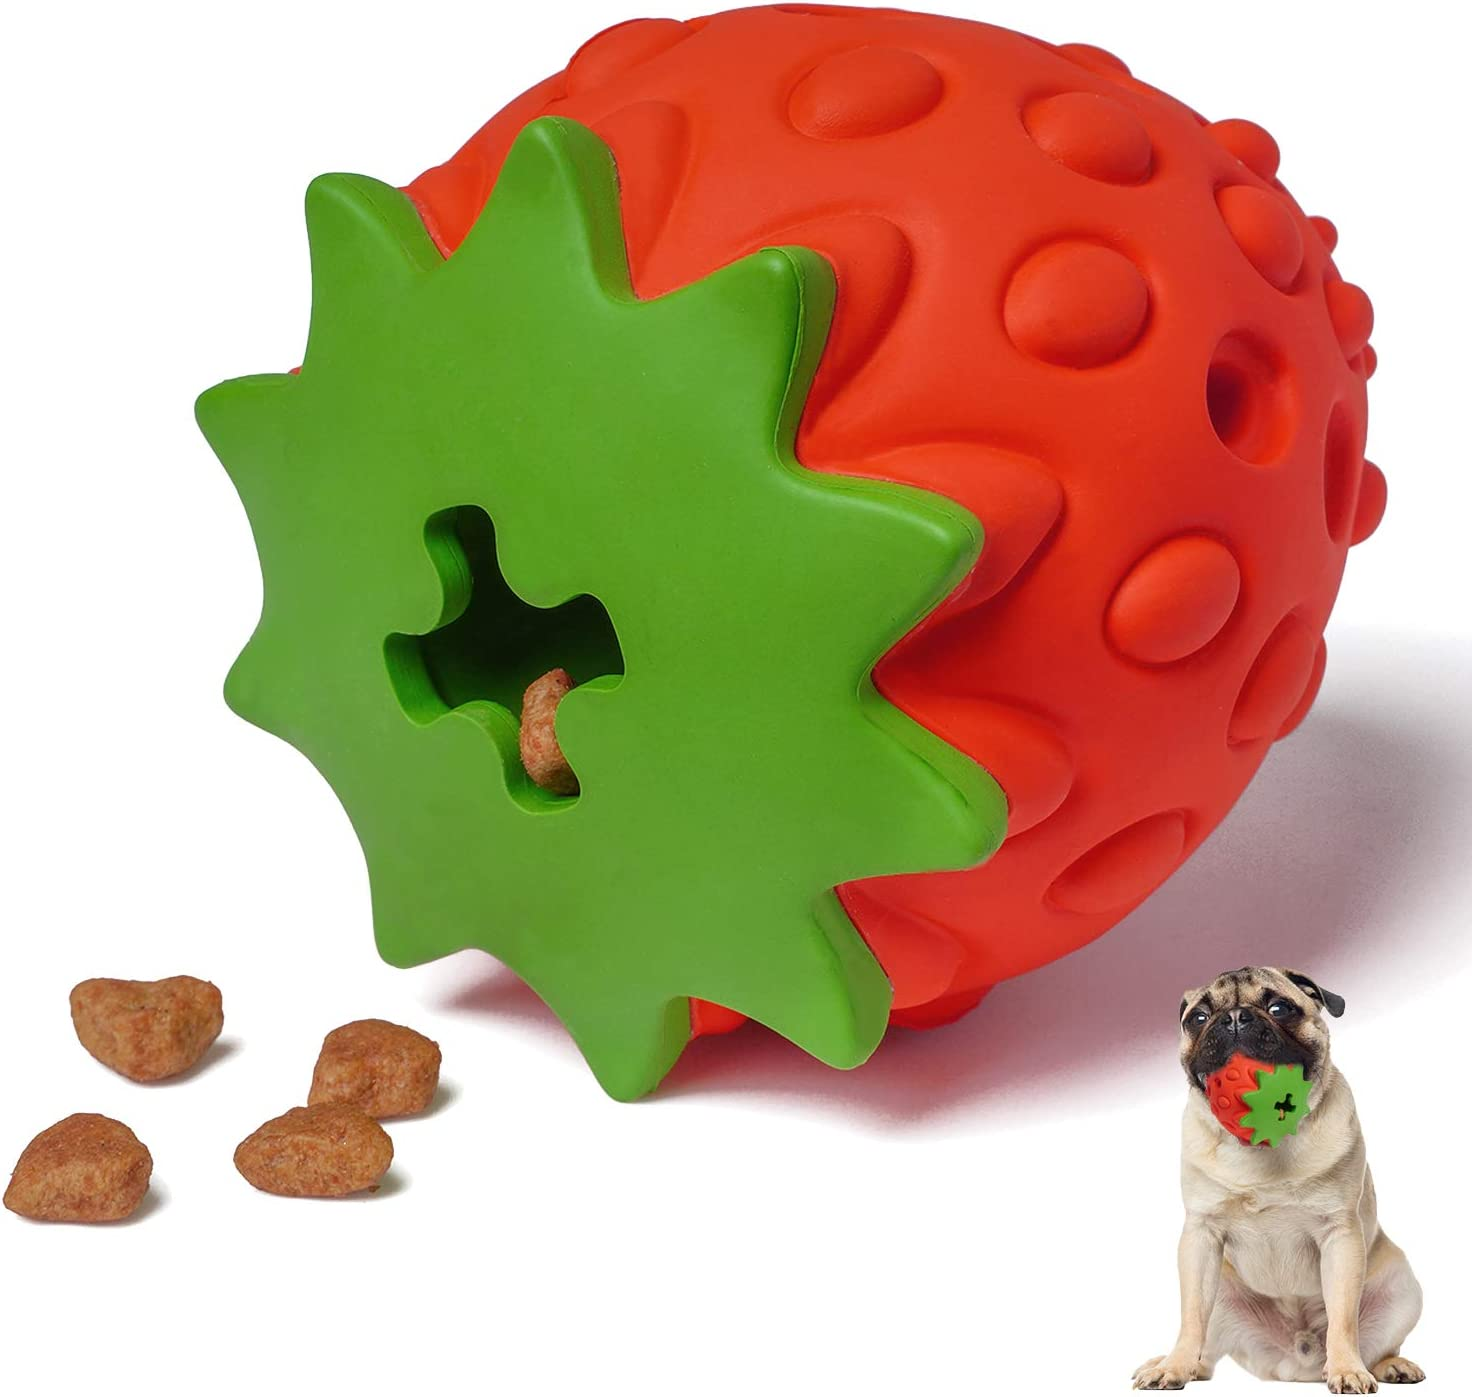 MewaJump Dog Toys for Aggressive Chewers, Indestructible DogChewToy for Training and Cleaning, Durable Rubber Dog Toys, Interactive Tough Teething Toy for Small Medium Large Dogs